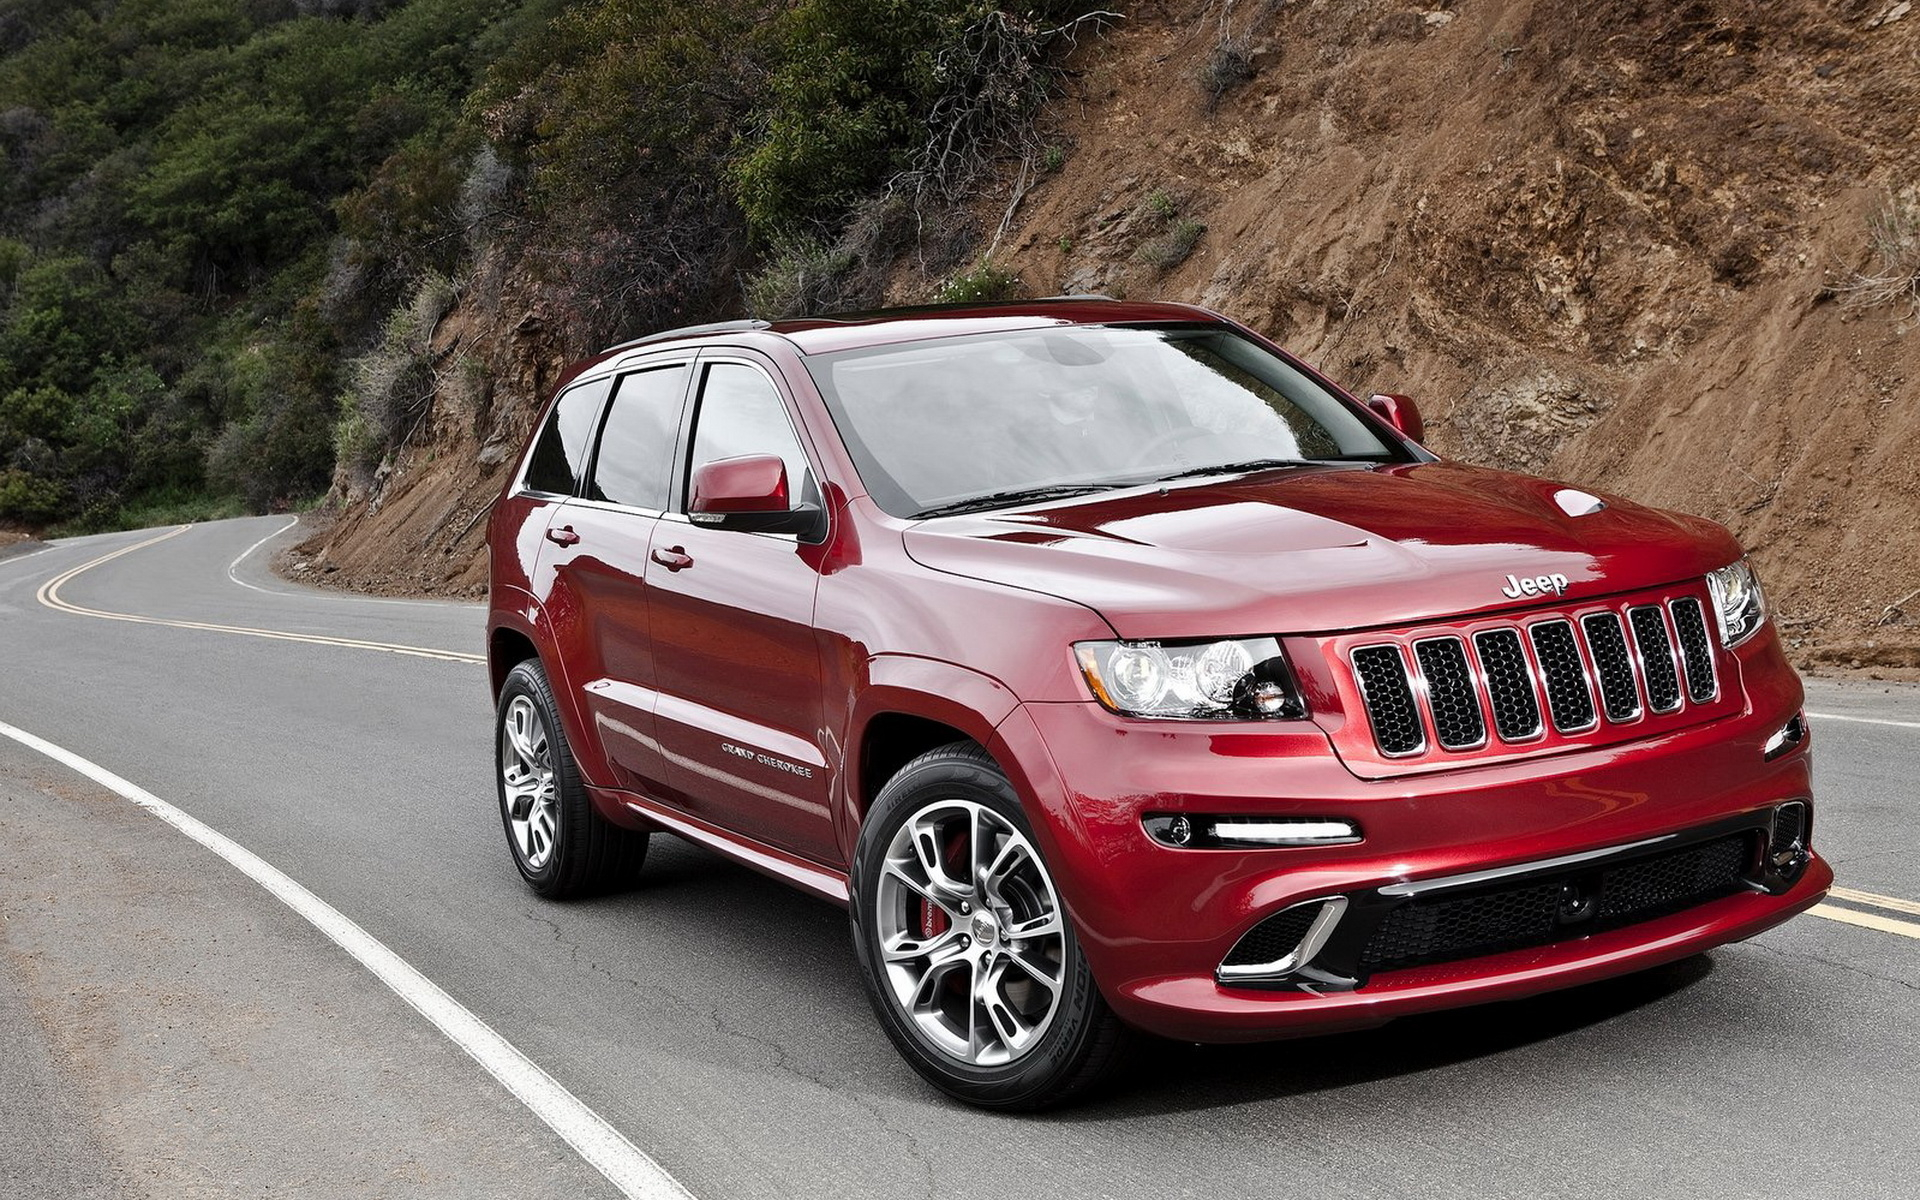 Jeep Grand Cherokee SRT8 wallpapers and images   wallpapers pictures 1920x1200